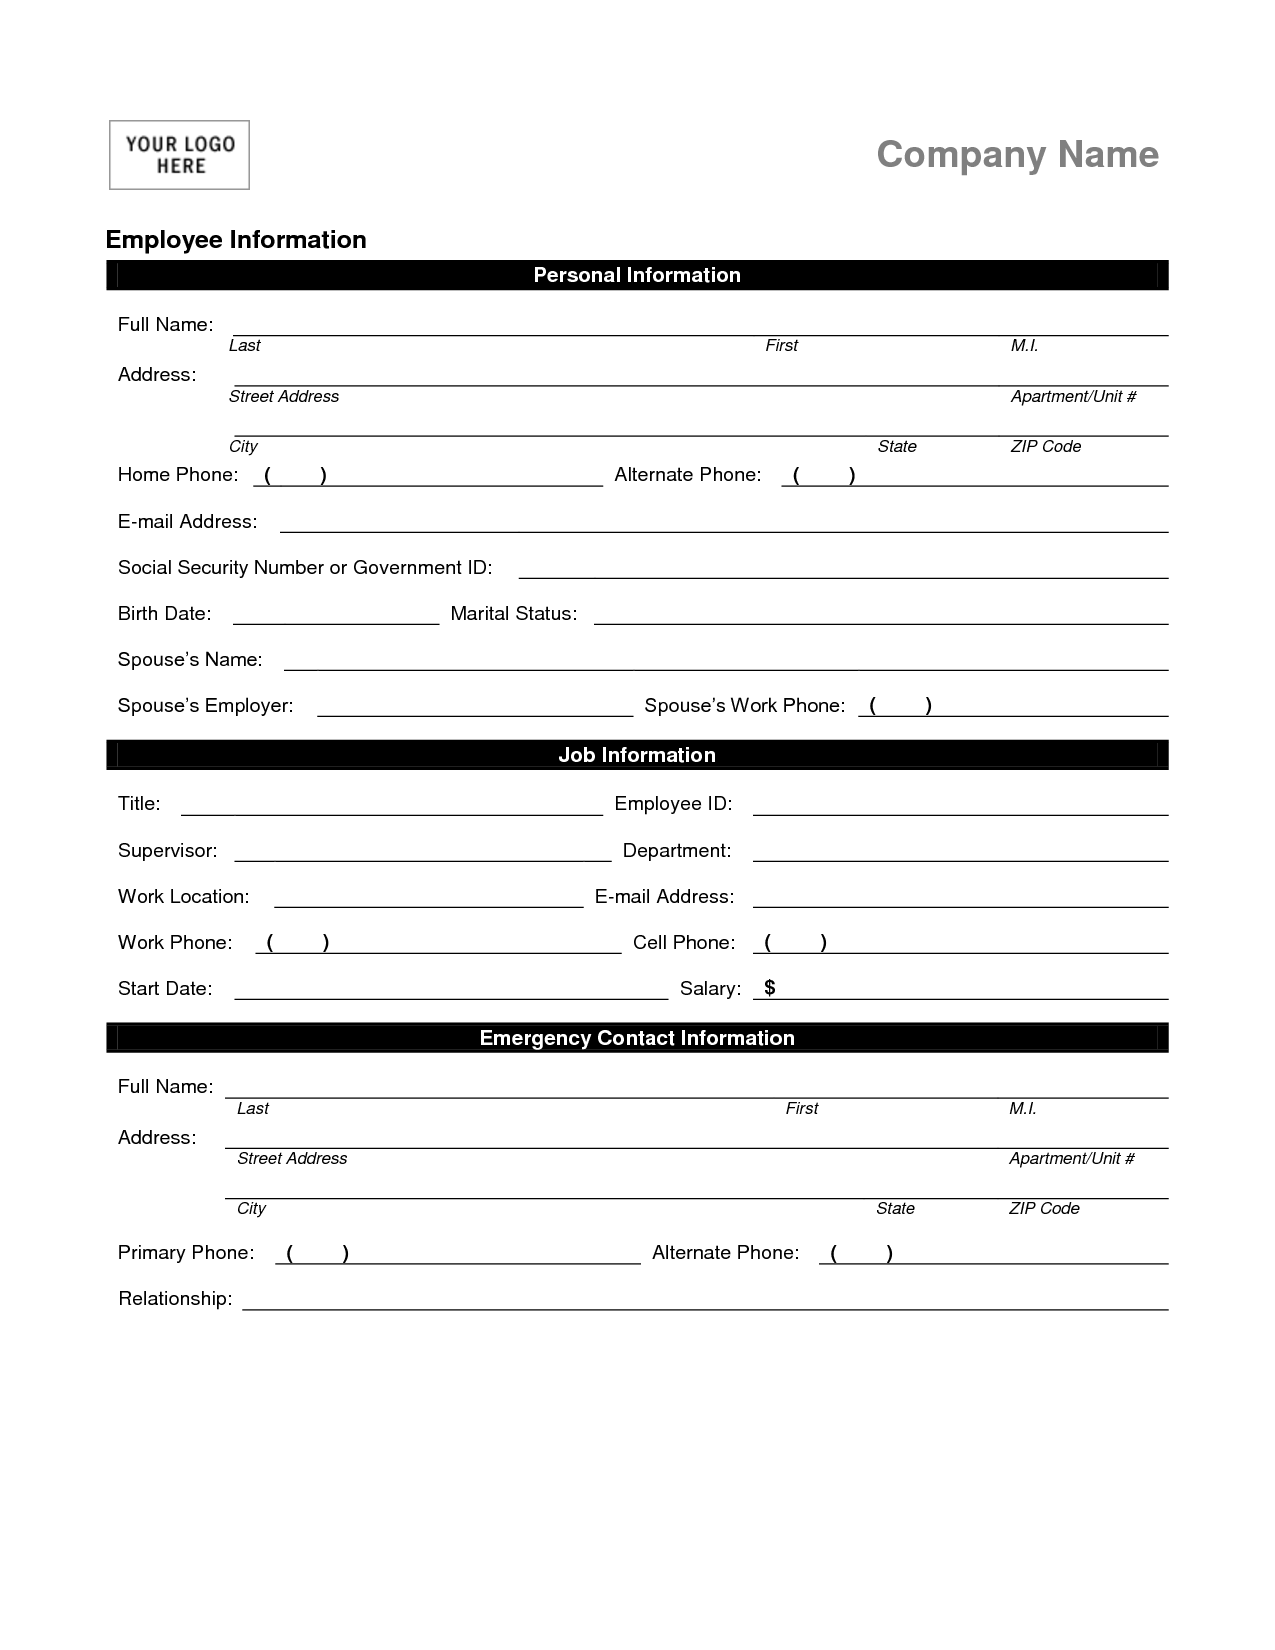 employee personal information form template hardsell employee personal information form template